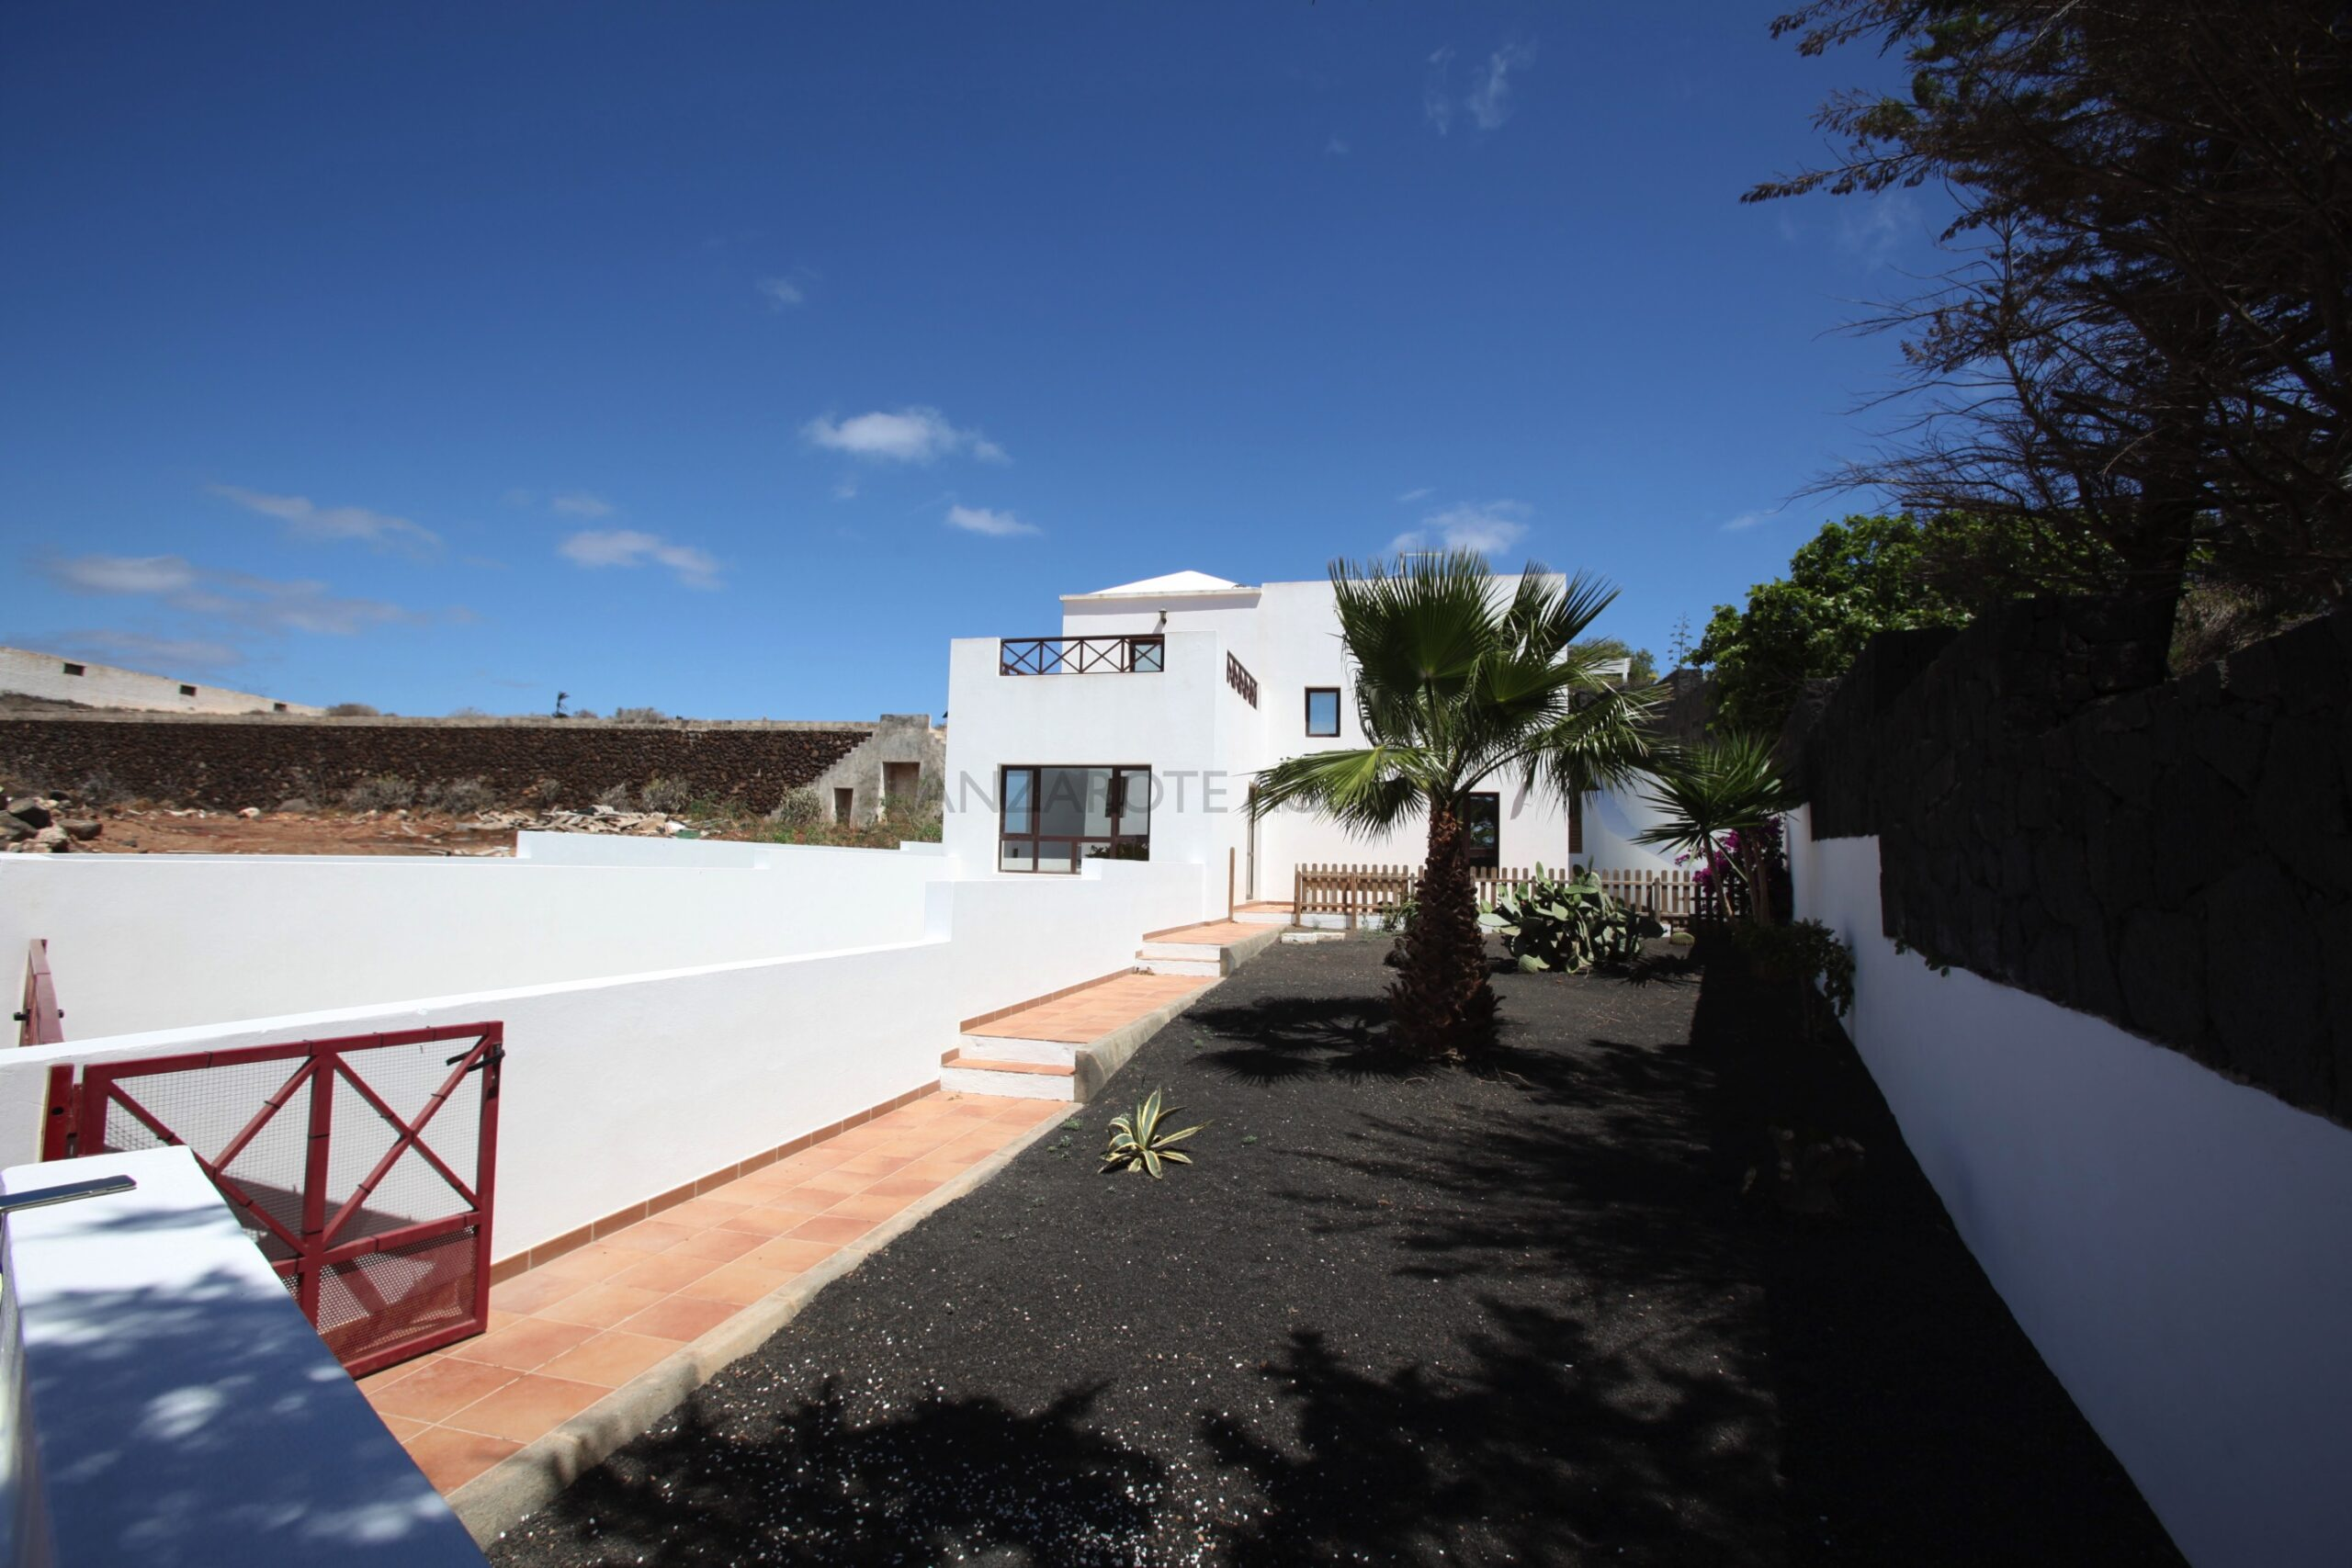 Detached Villa without Pool in Yaiza with Good Size Plot, Garage and Wonderful Views of Timanfaya National Park